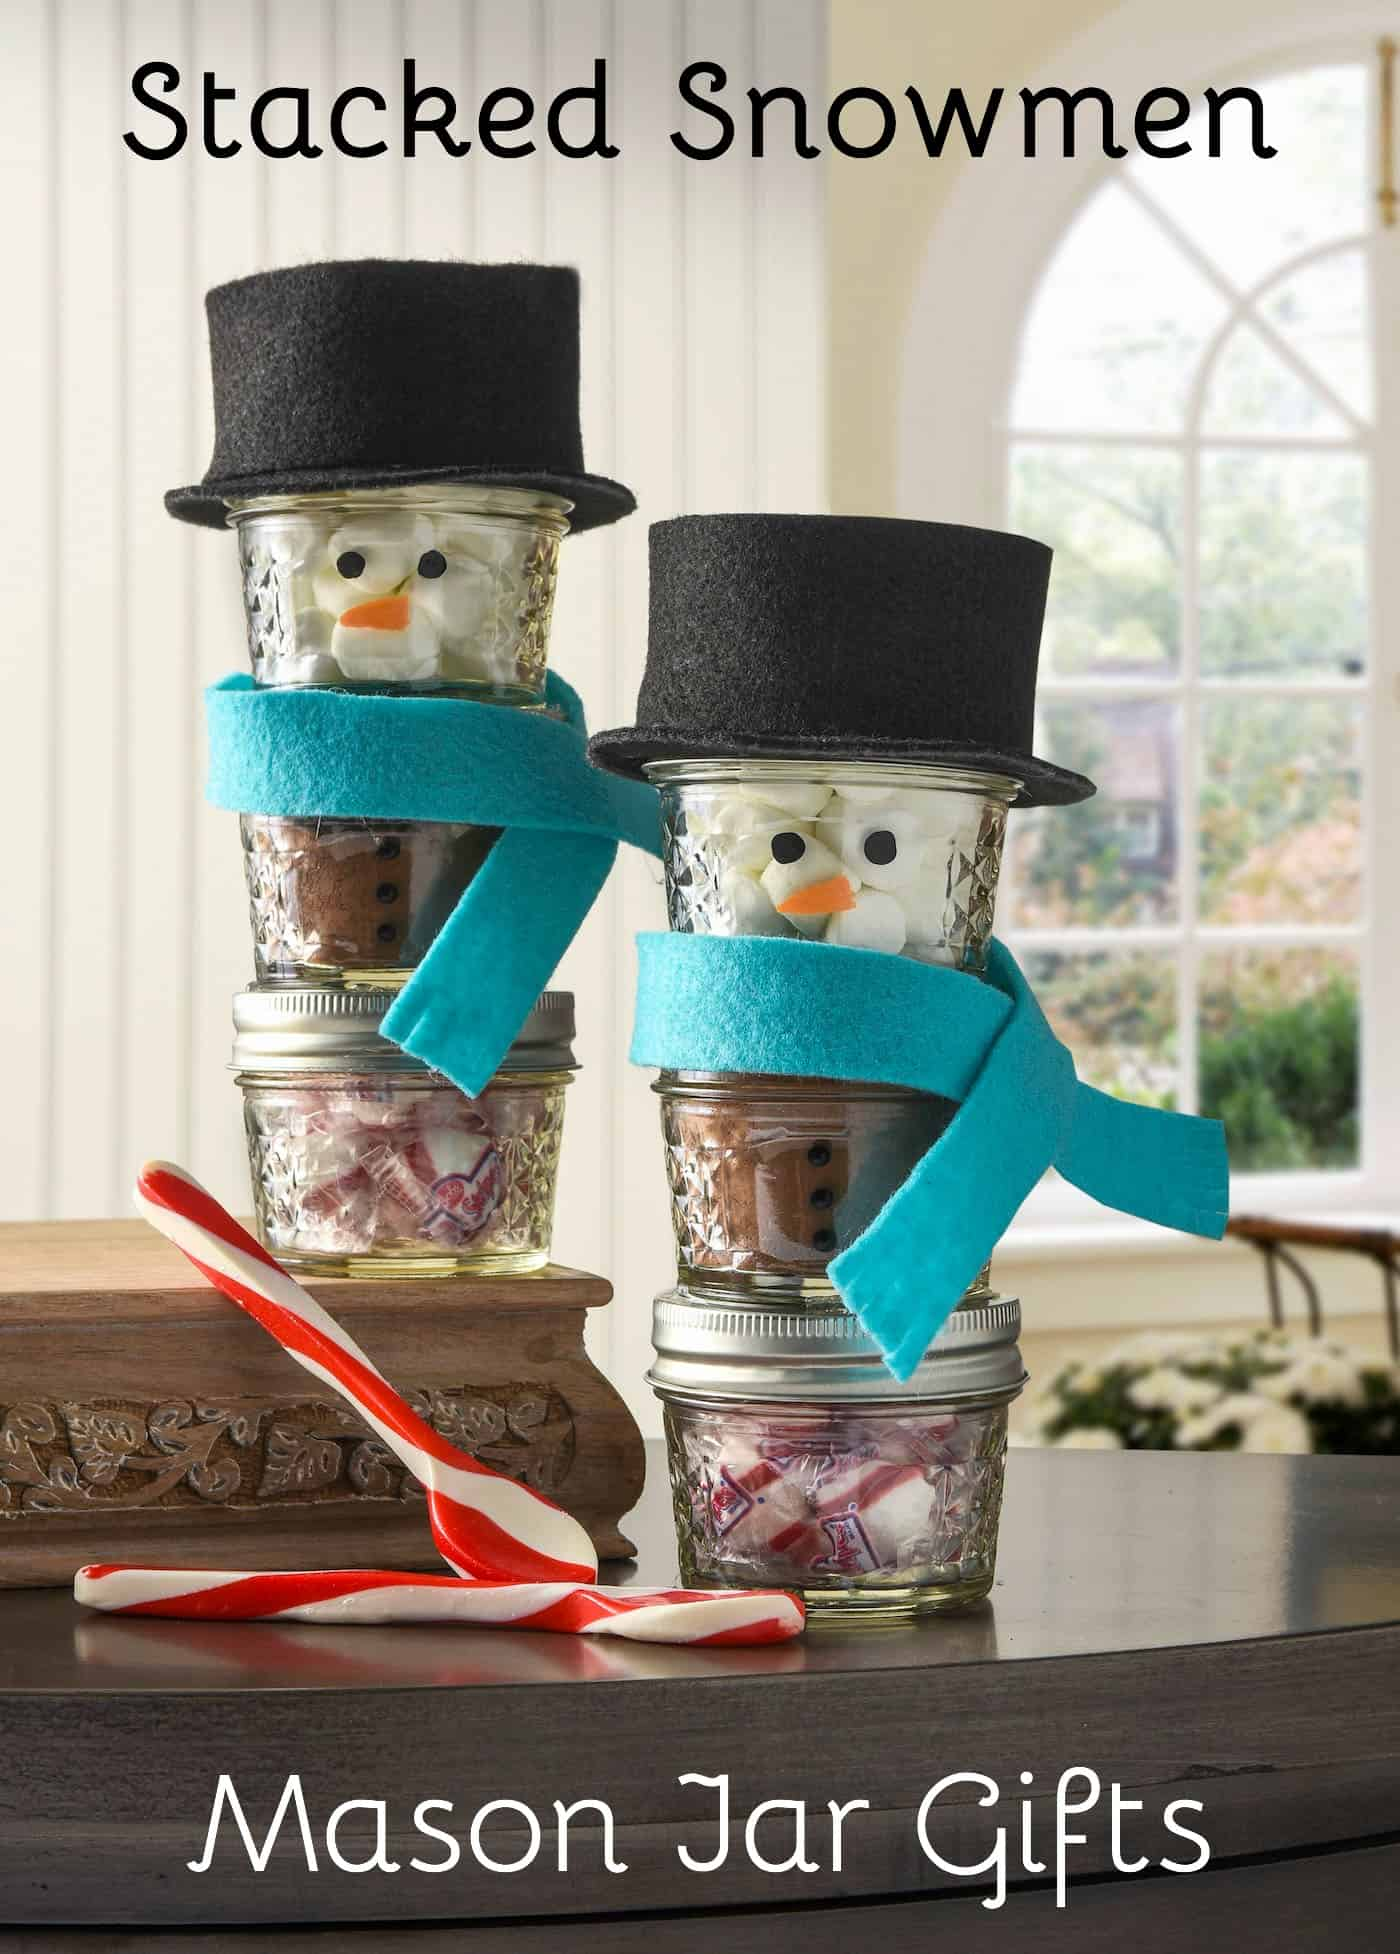 These cute snowmen mason jar gifts are so easy to make - just use felt and paint. Add hot cocoa, mints, and marshmallows to make them a lovely gift idea.